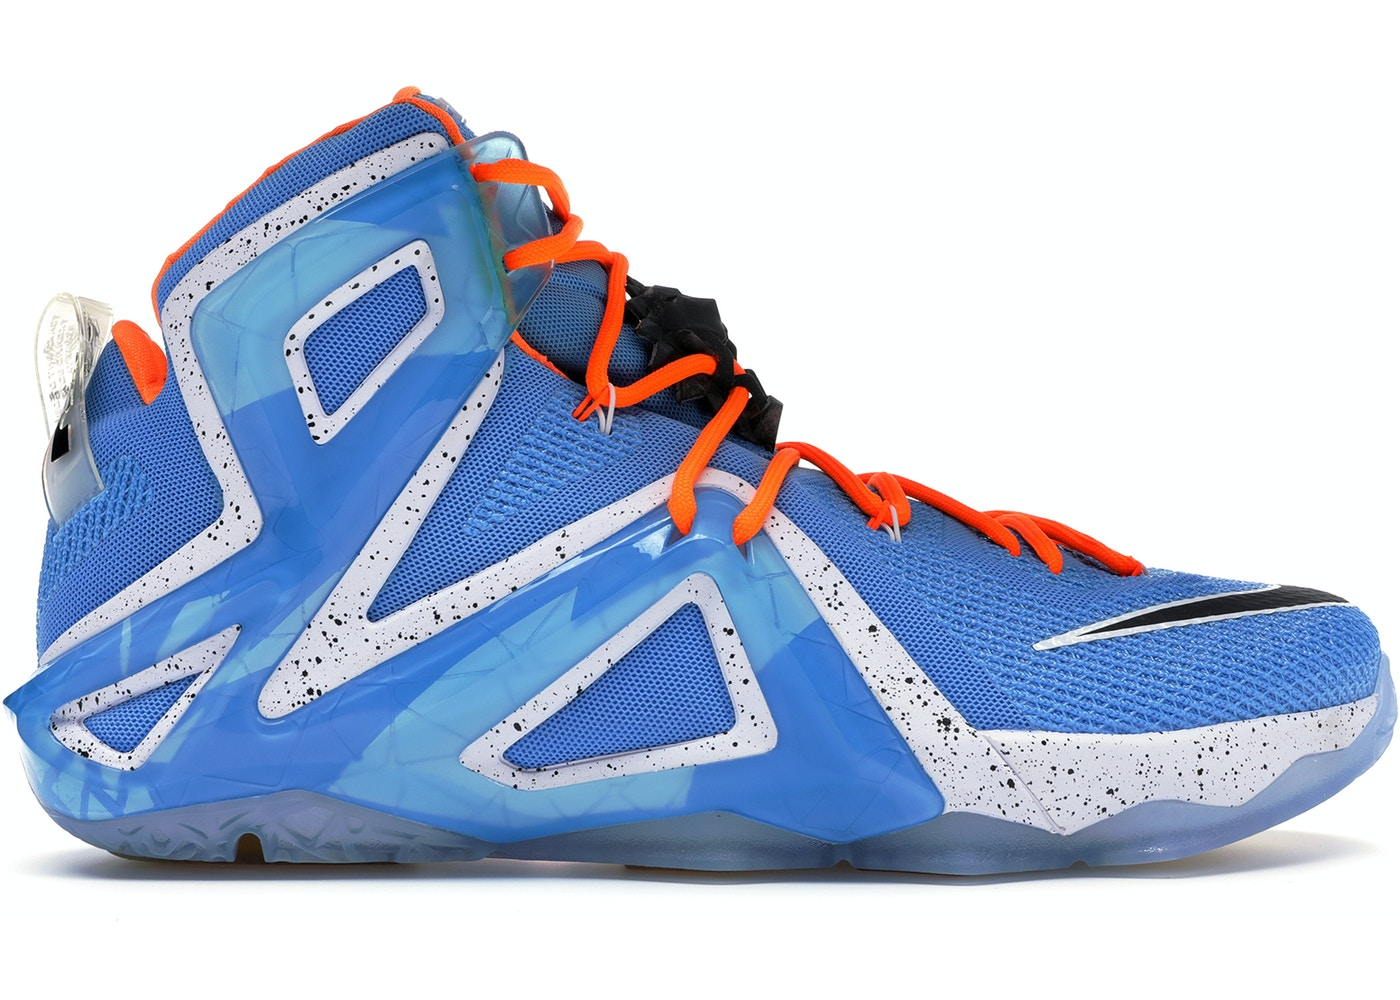 newest a2319 9794a Nike LeBron 12 Shoes - Average Sale Price